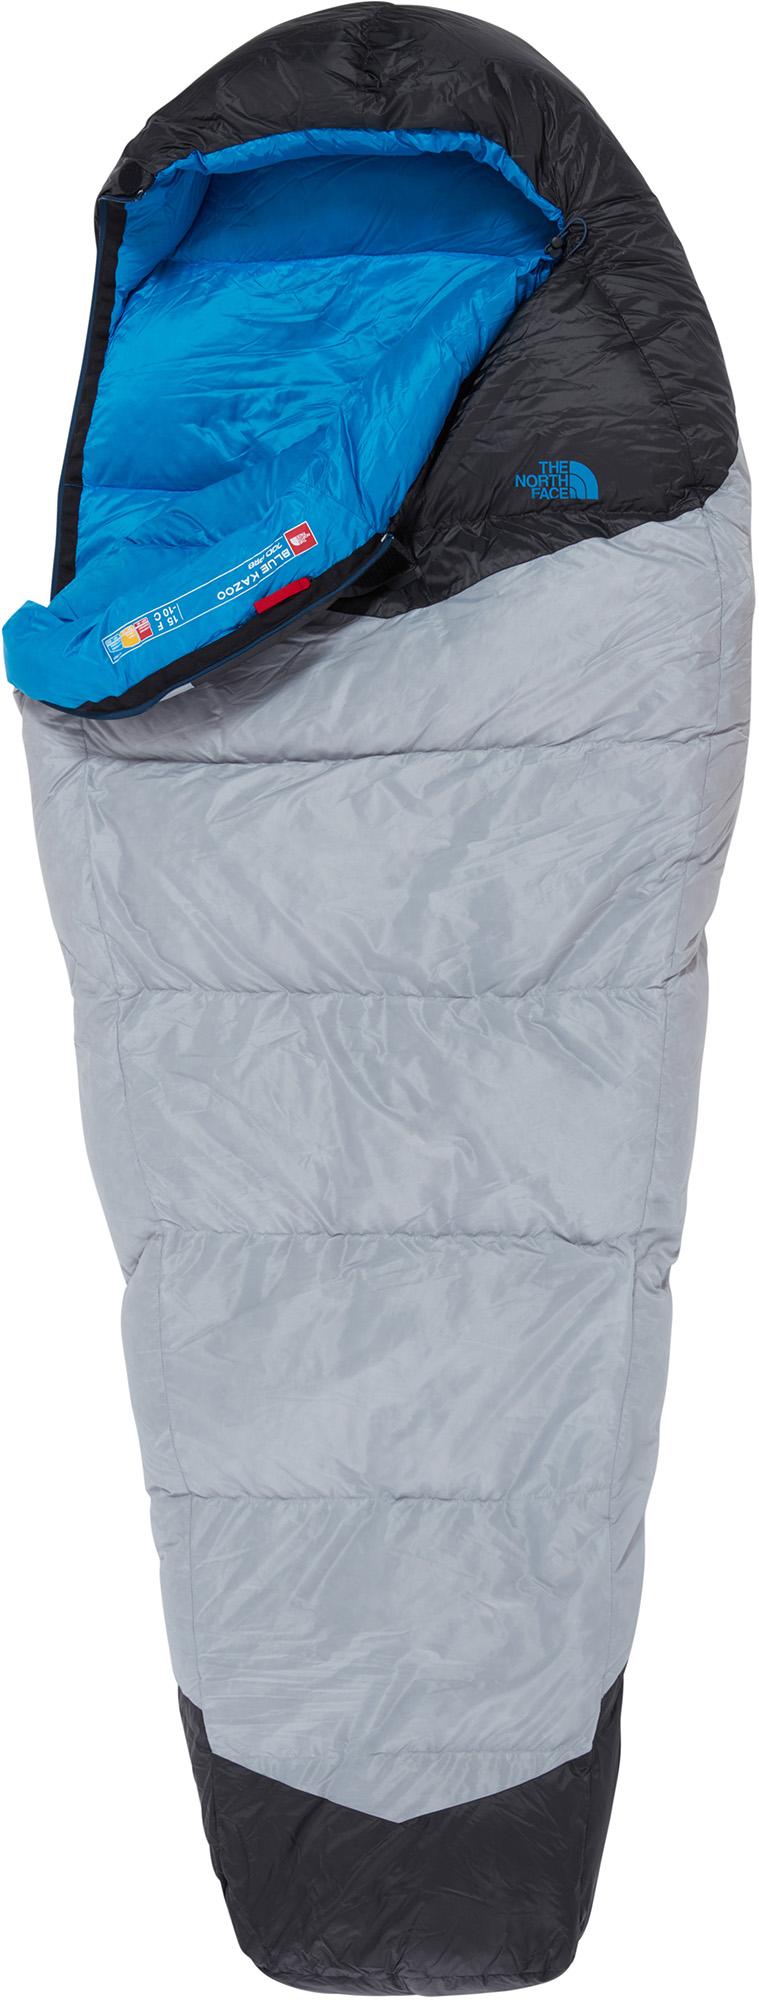 The North Face The North Face Blue Kazoo Regular